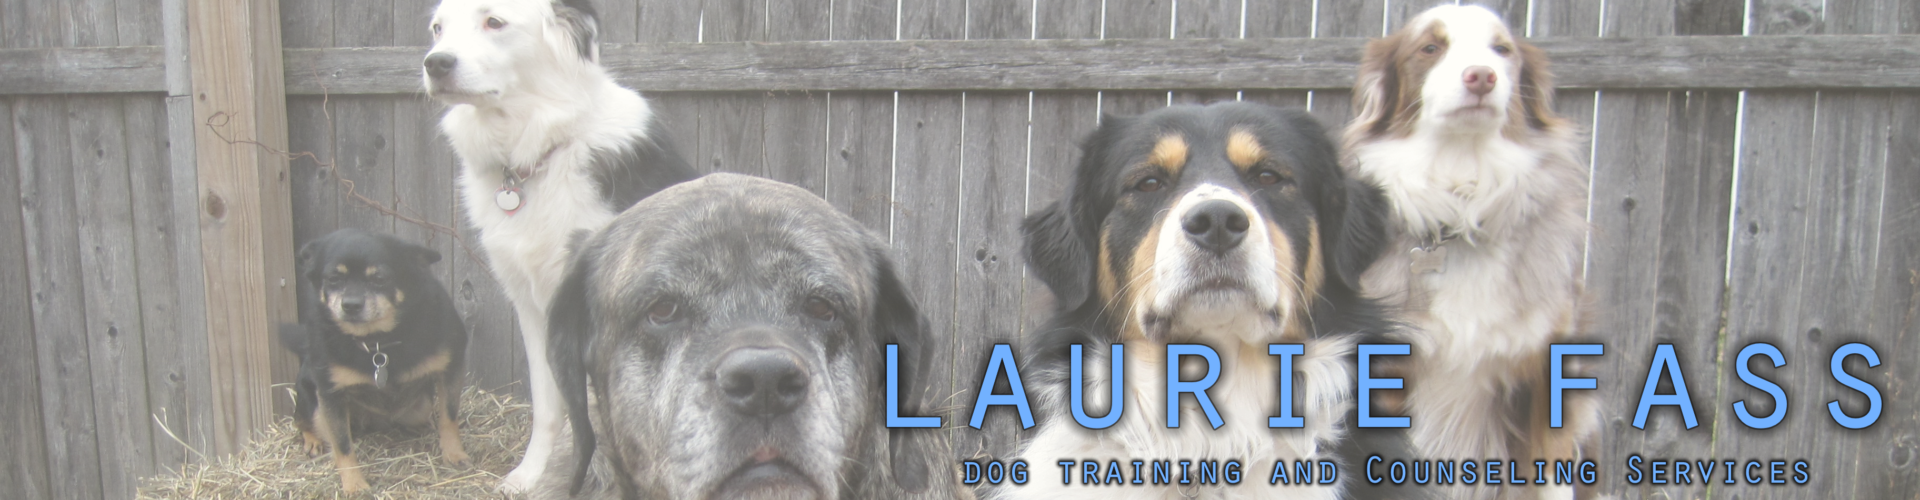 http://www.lauriefassdogtraining.com/wp-content/uploads/2020/09/cropped-dogs_blogbanner-1-1.png